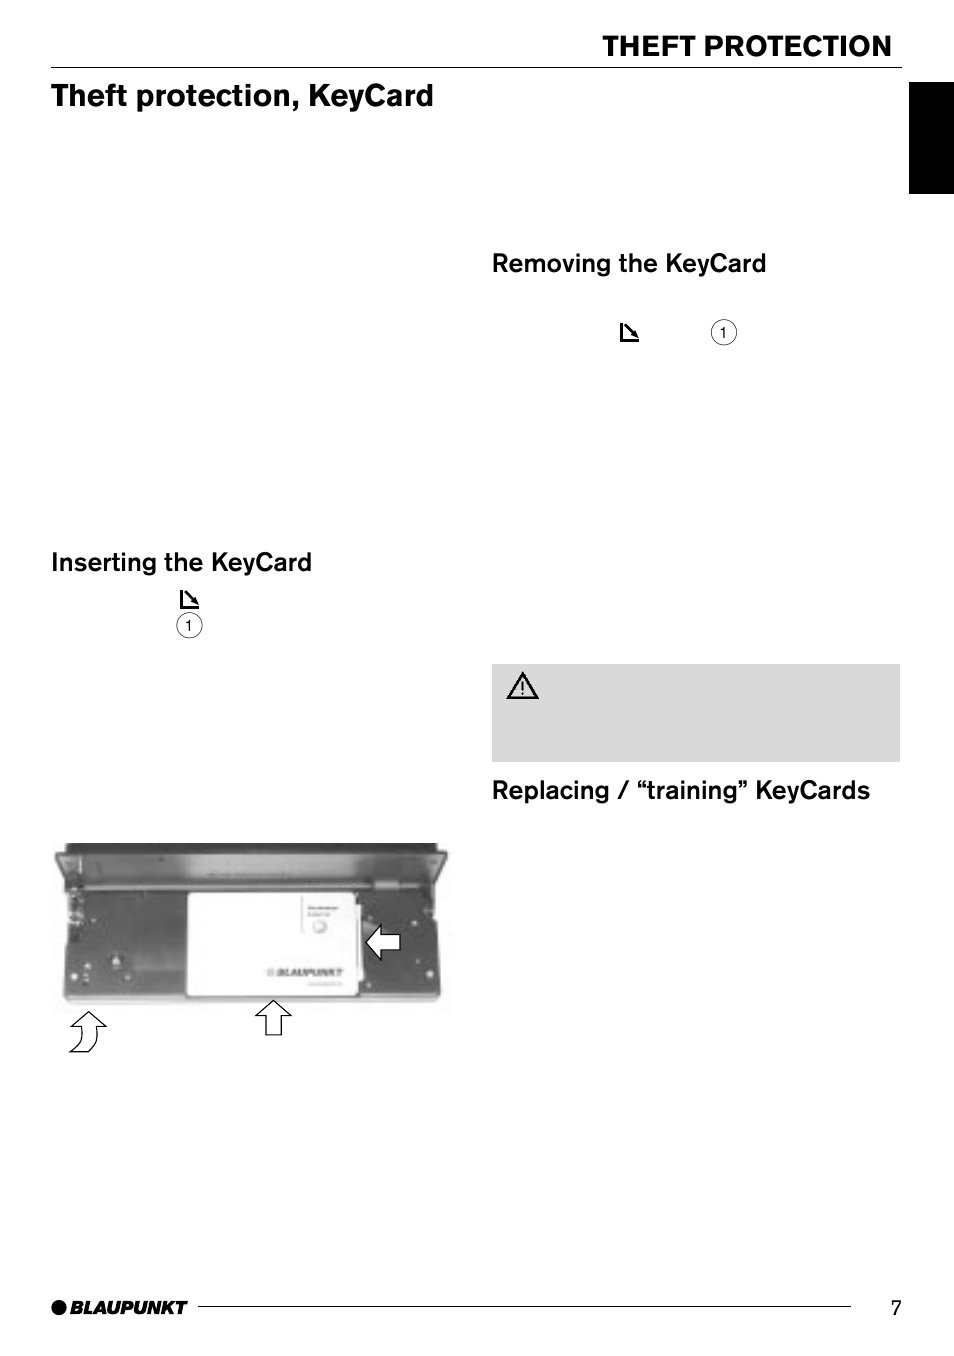 Theft protection, keycard, Theft protection, Removing the keycard | Blaupunkt  SAN FRANCISCO CD70 User Manual | Page 7 / 38